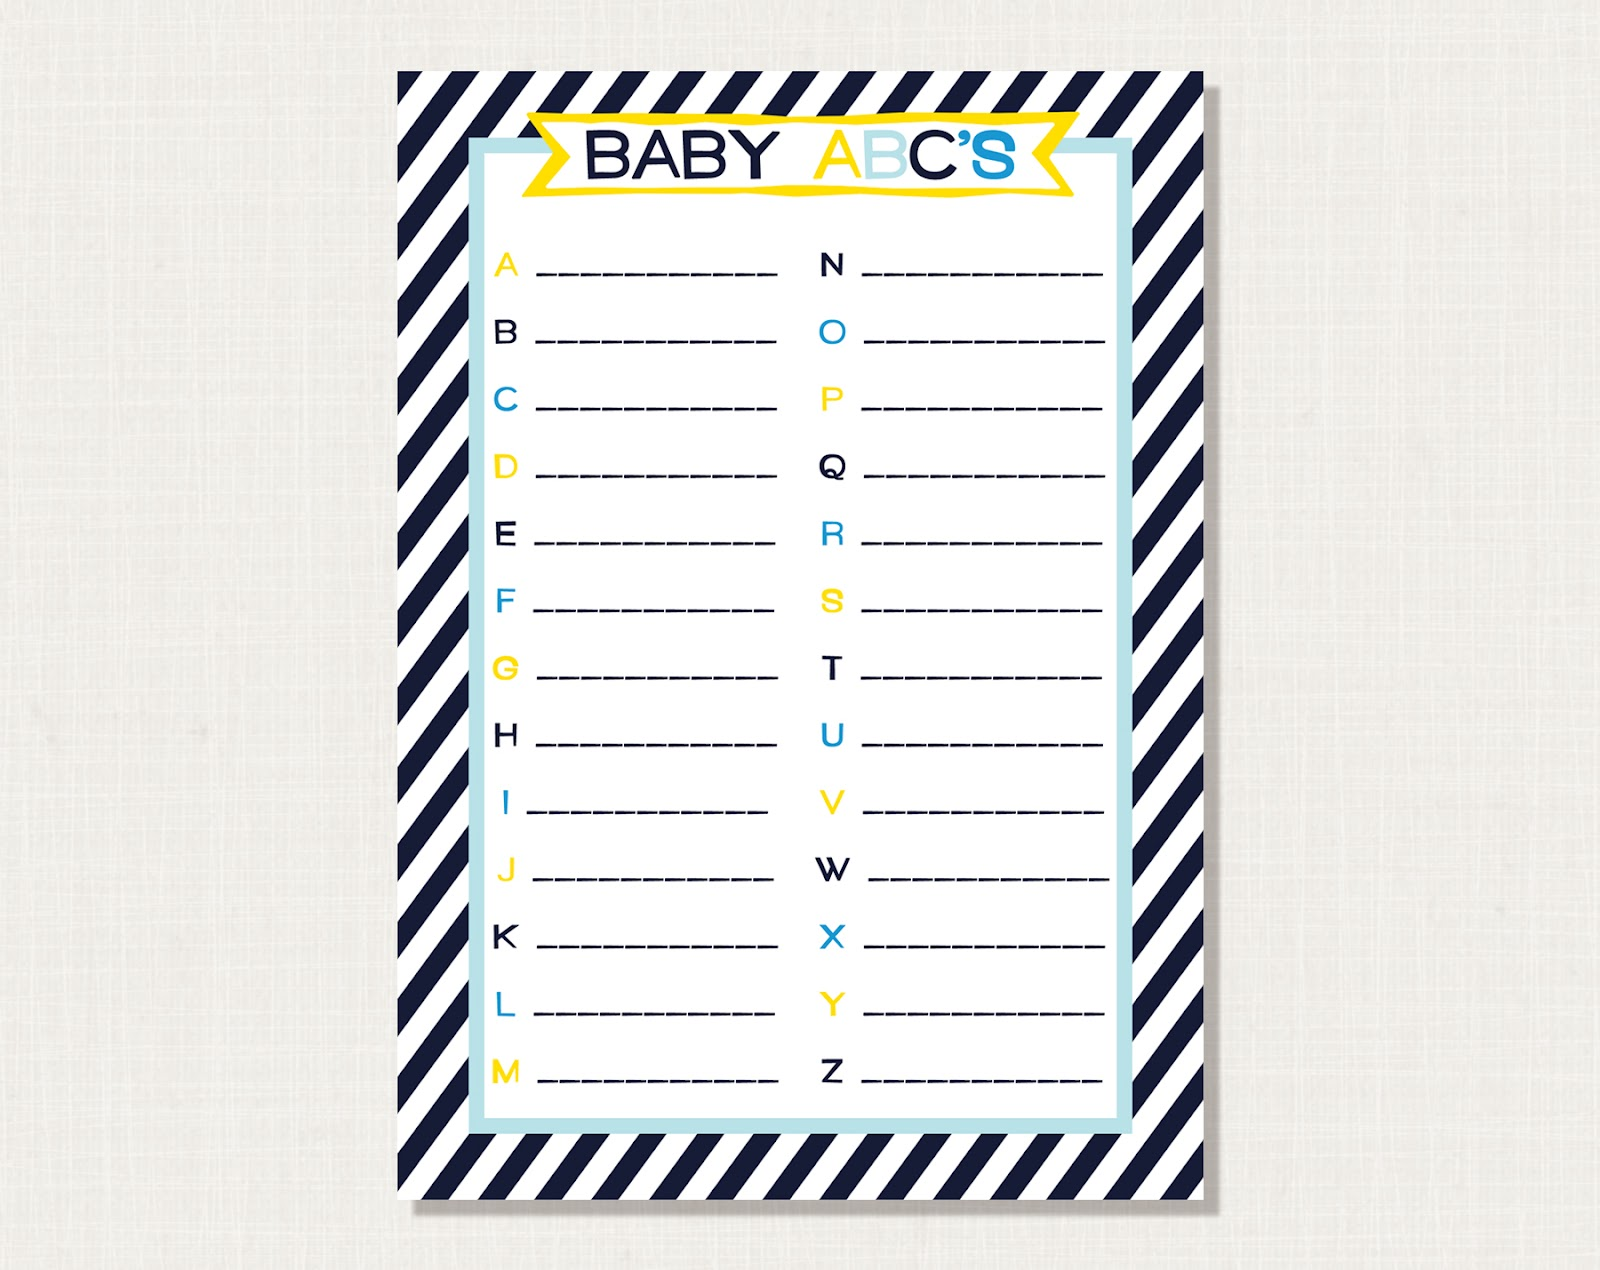 prickly press nautical baby shower game baby abc 39 s